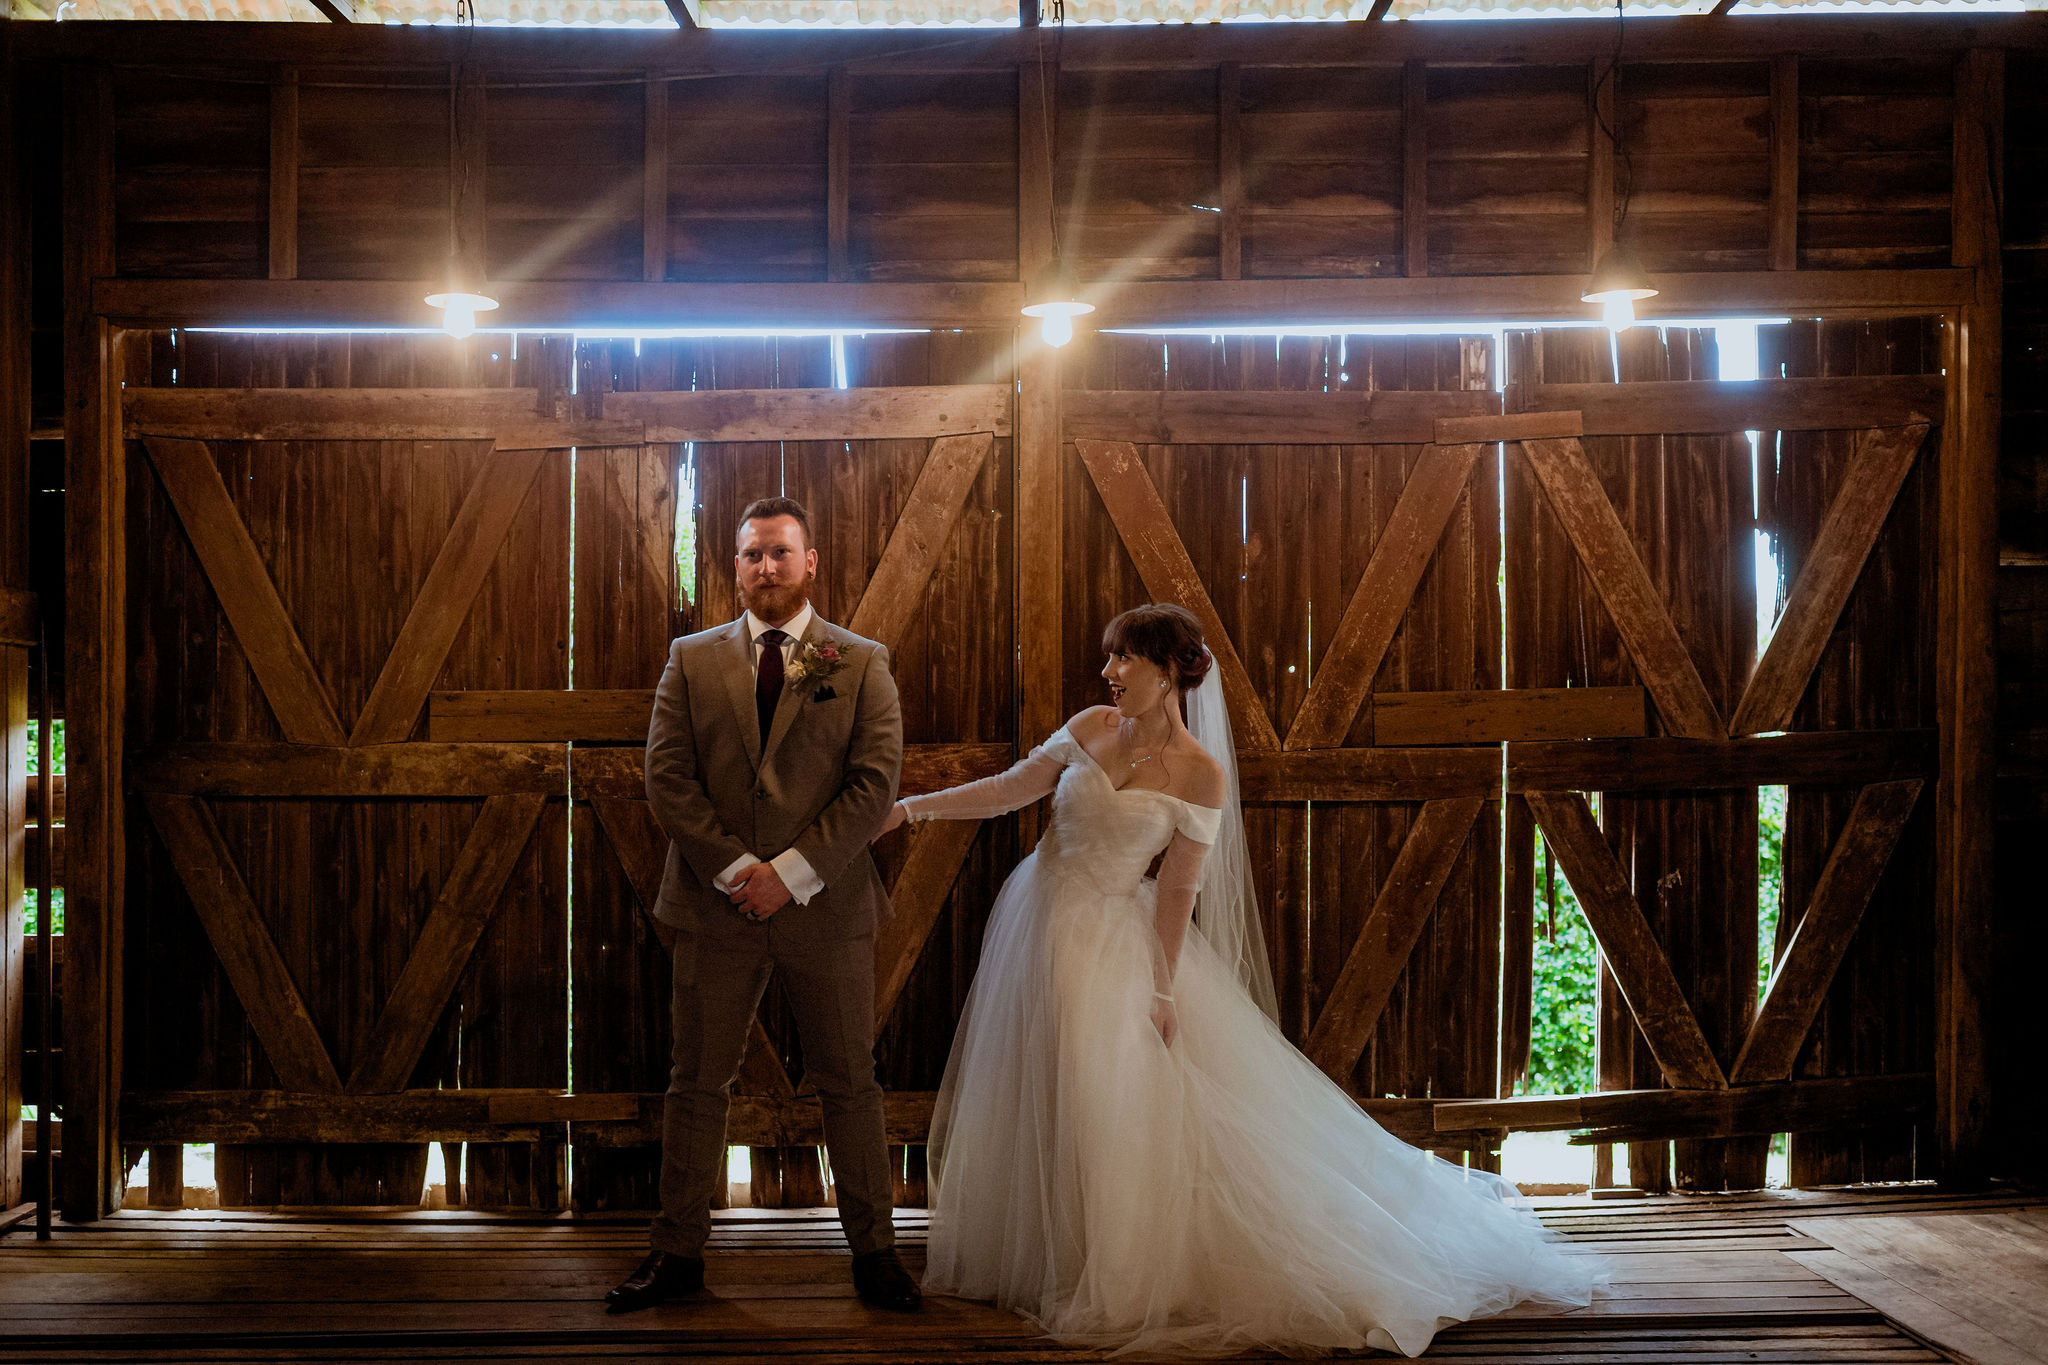 Bride and groom posing together in front of wooden barn doors